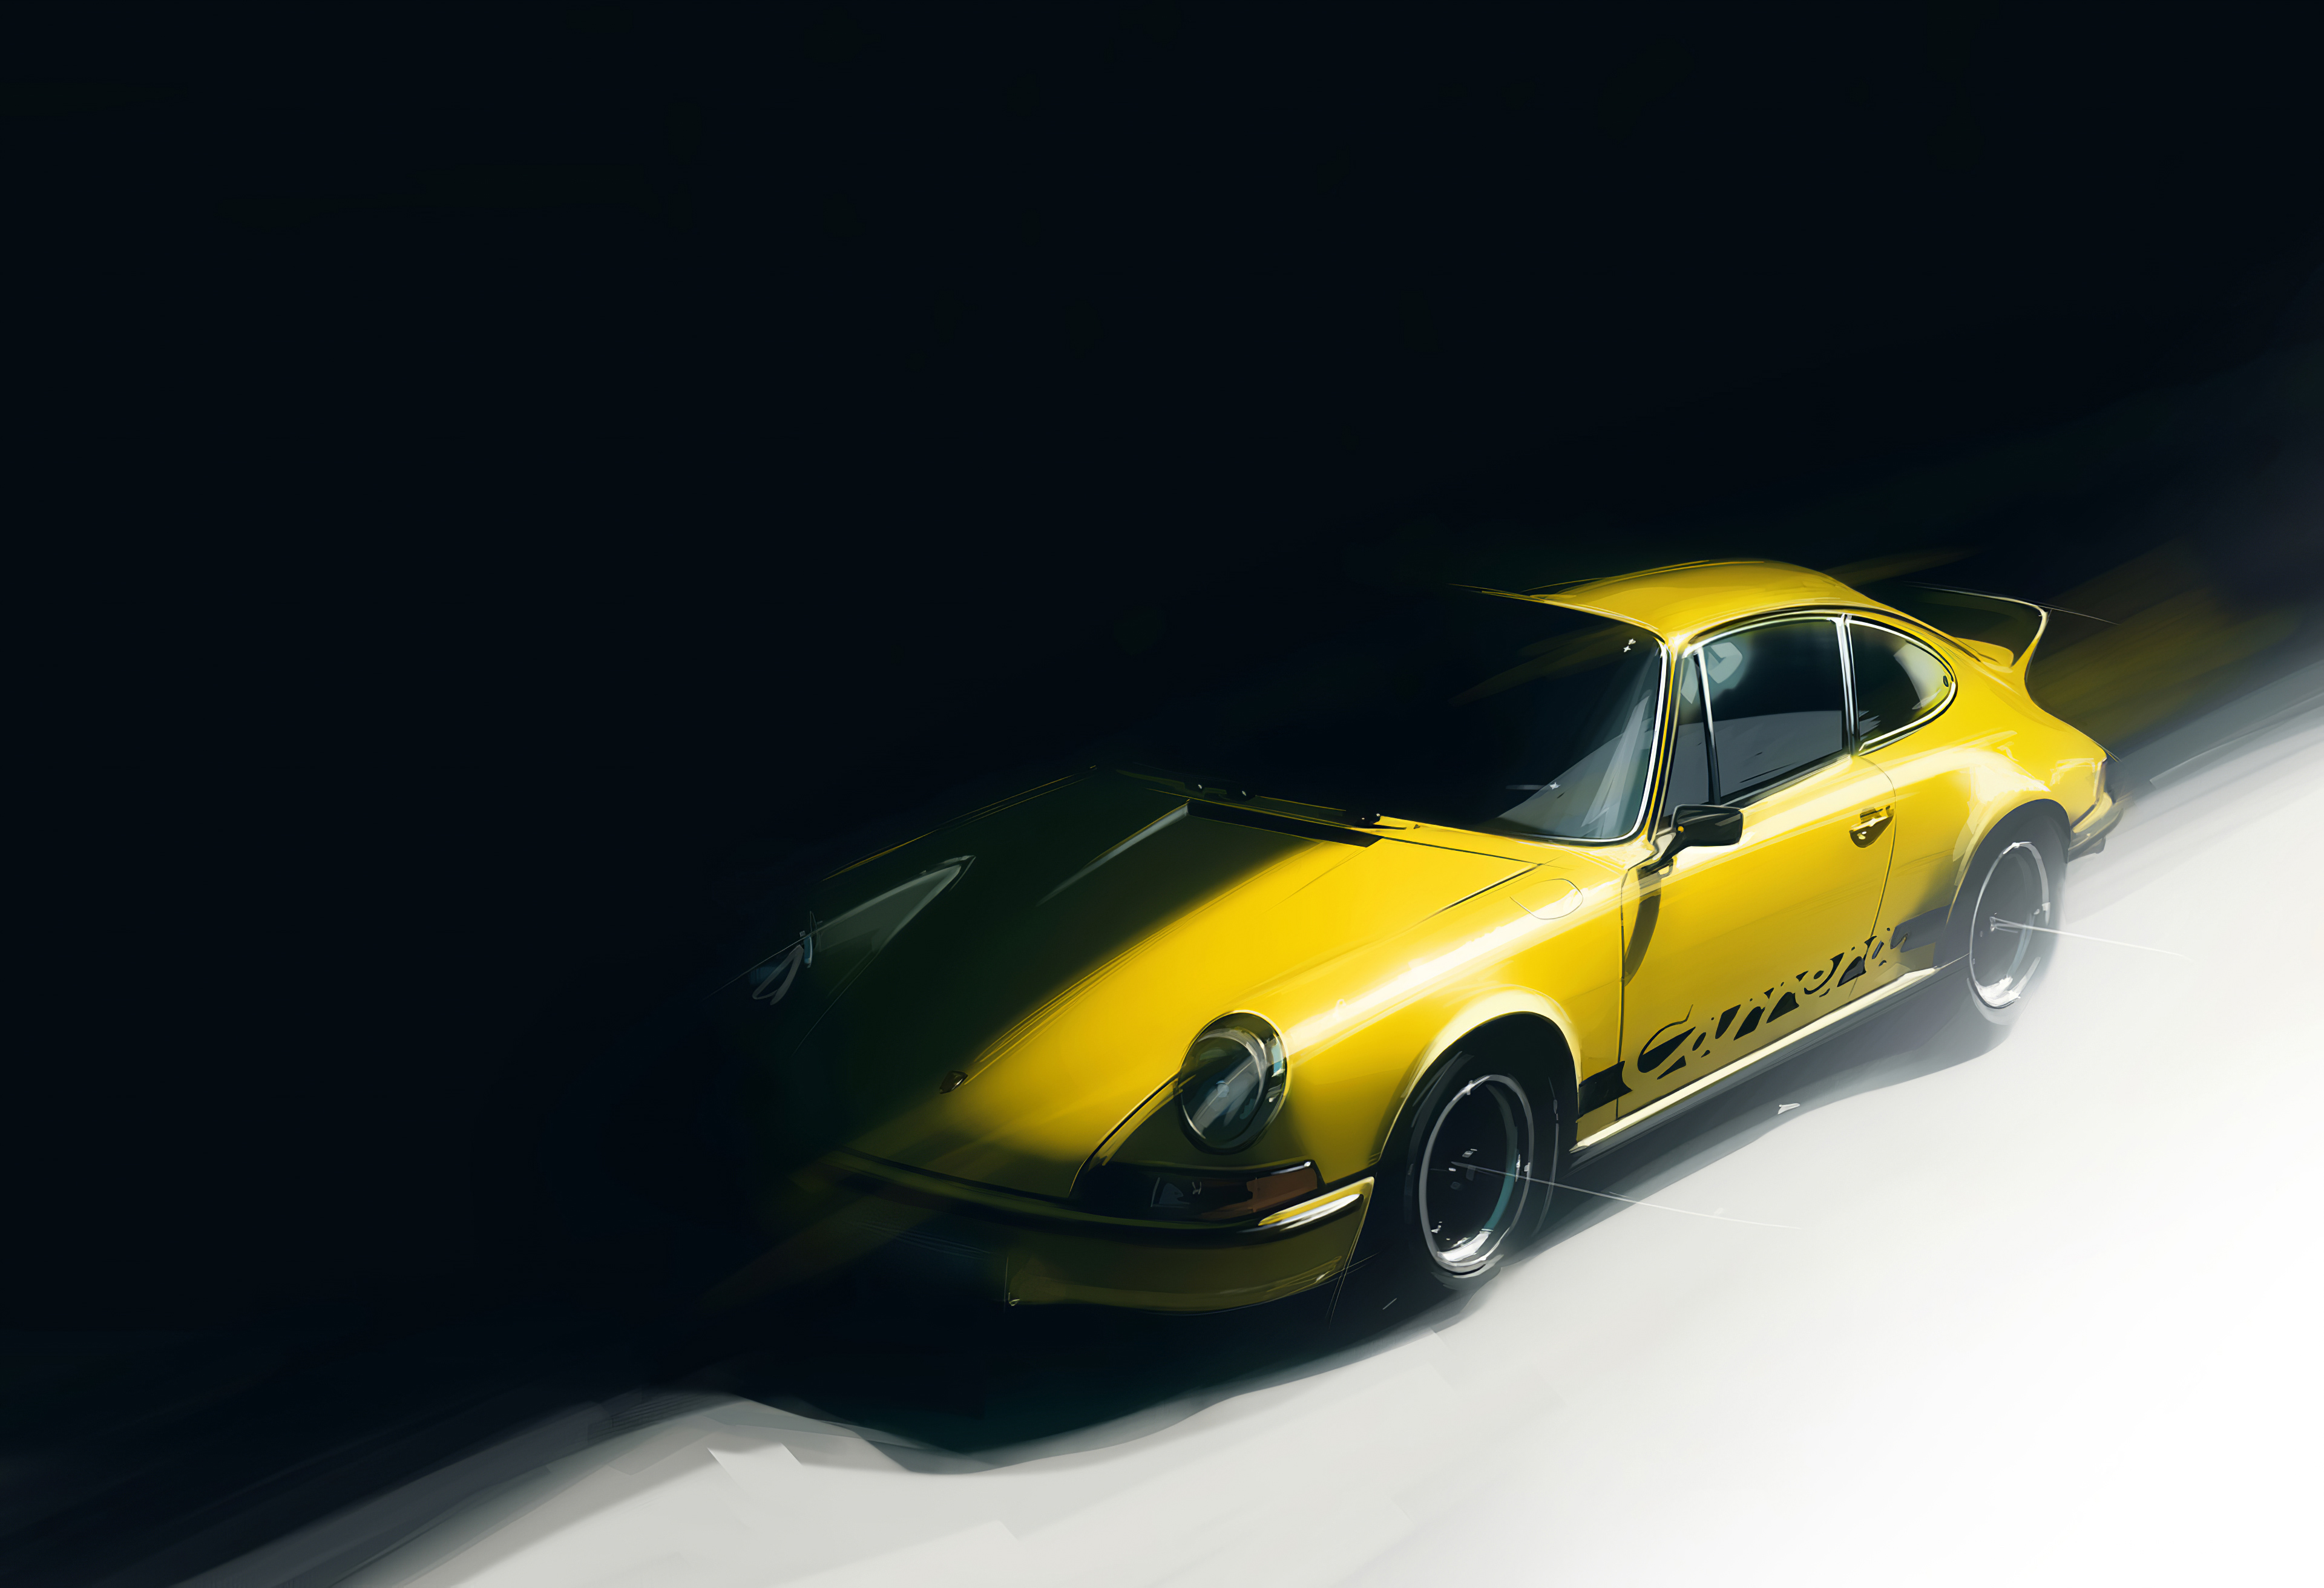 Yellow Porsche Artwork Hd Cars 4k Wallpapers Images Backgrounds Photos And Pictures